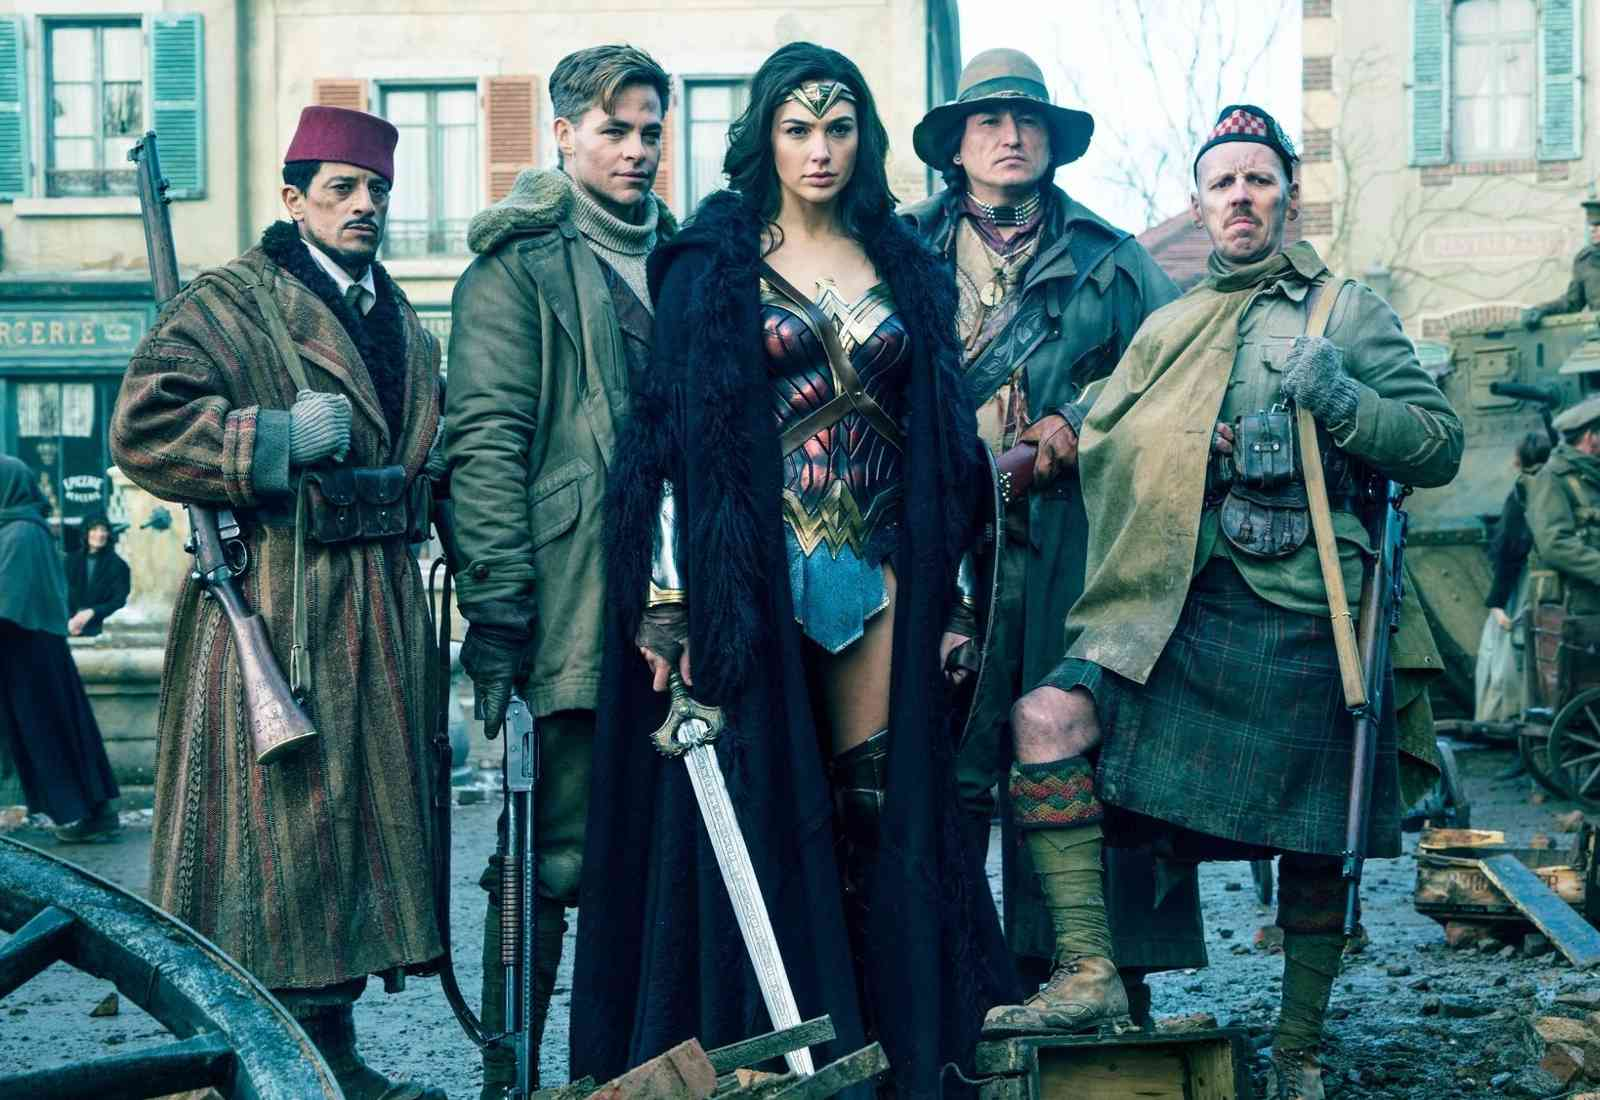 Wonder Woman group photo